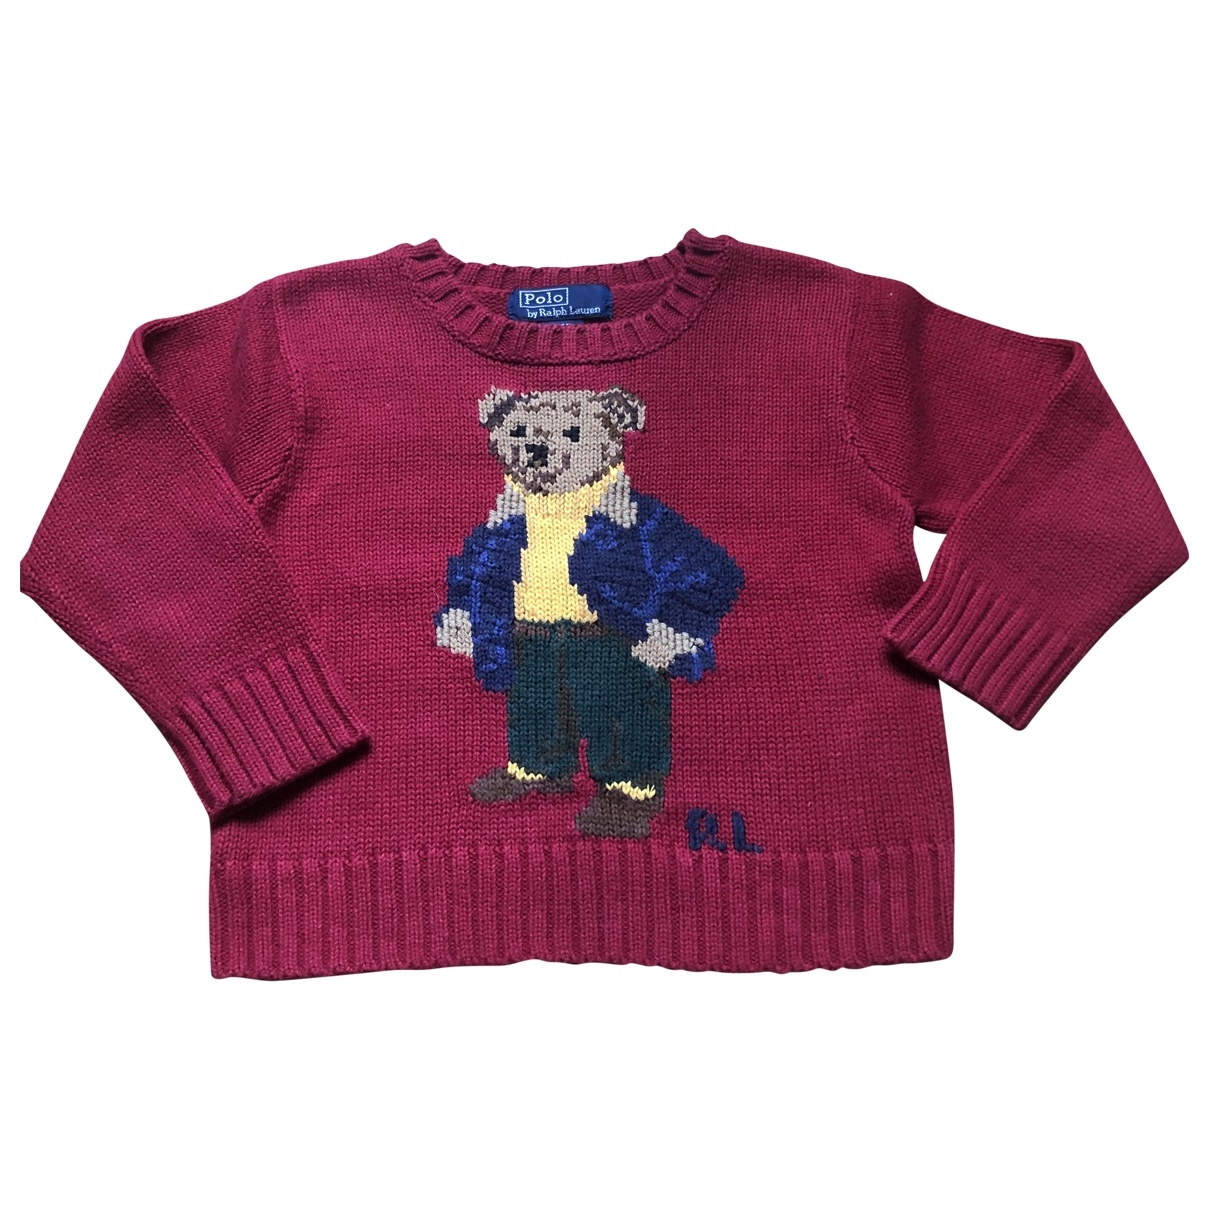 Polo Ralph Lauren \N Red Cotton Knitwear for Kids 2 years - up to 86cm FR